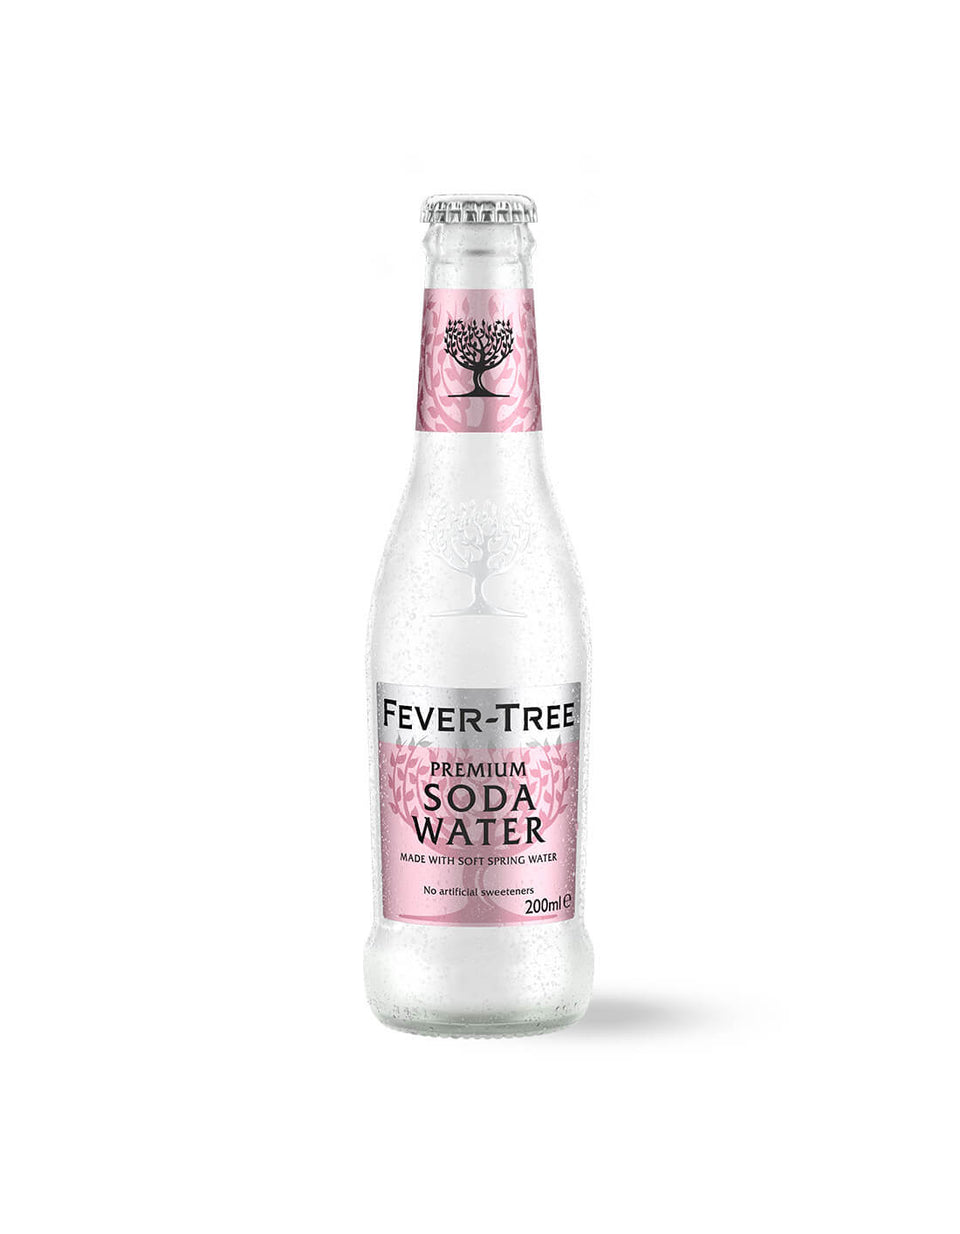 Fever-Tree Premium Soda Water 200mL